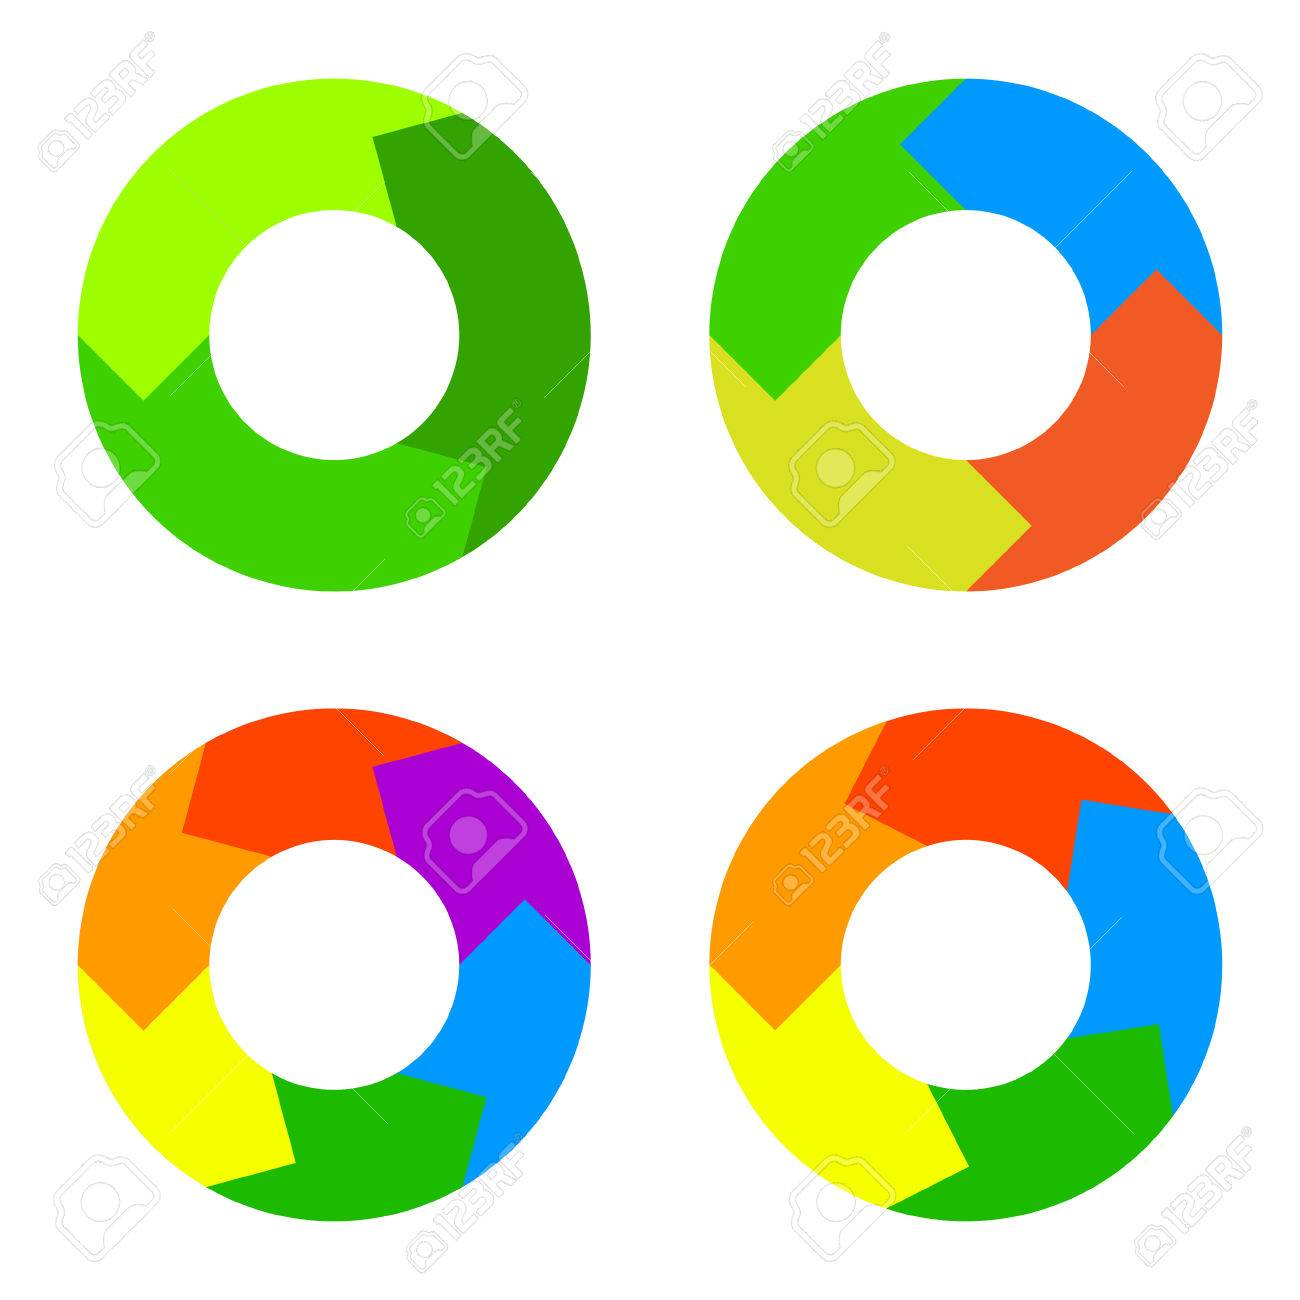 circle color diagram set in flat design style royalty free cliparts rh 123rf com